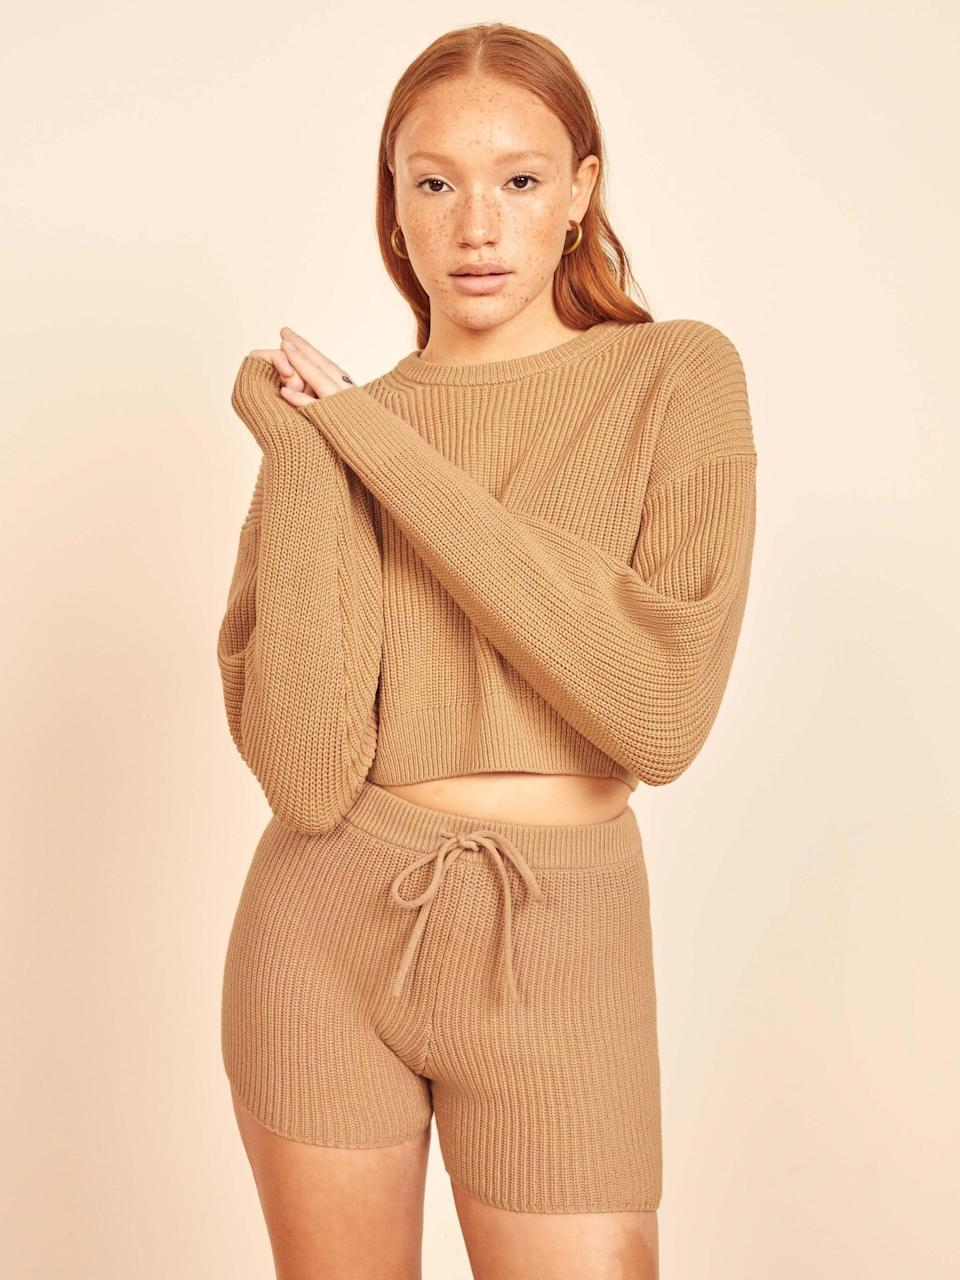 "<br><br><strong>Reformation</strong> Sami Cropped Sweater, $, available at <a href=""https://www.thereformation.com/products/sami-sweater?"" rel=""nofollow noopener"" target=""_blank"" data-ylk=""slk:Reformation"" class=""link rapid-noclick-resp"">Reformation</a>"